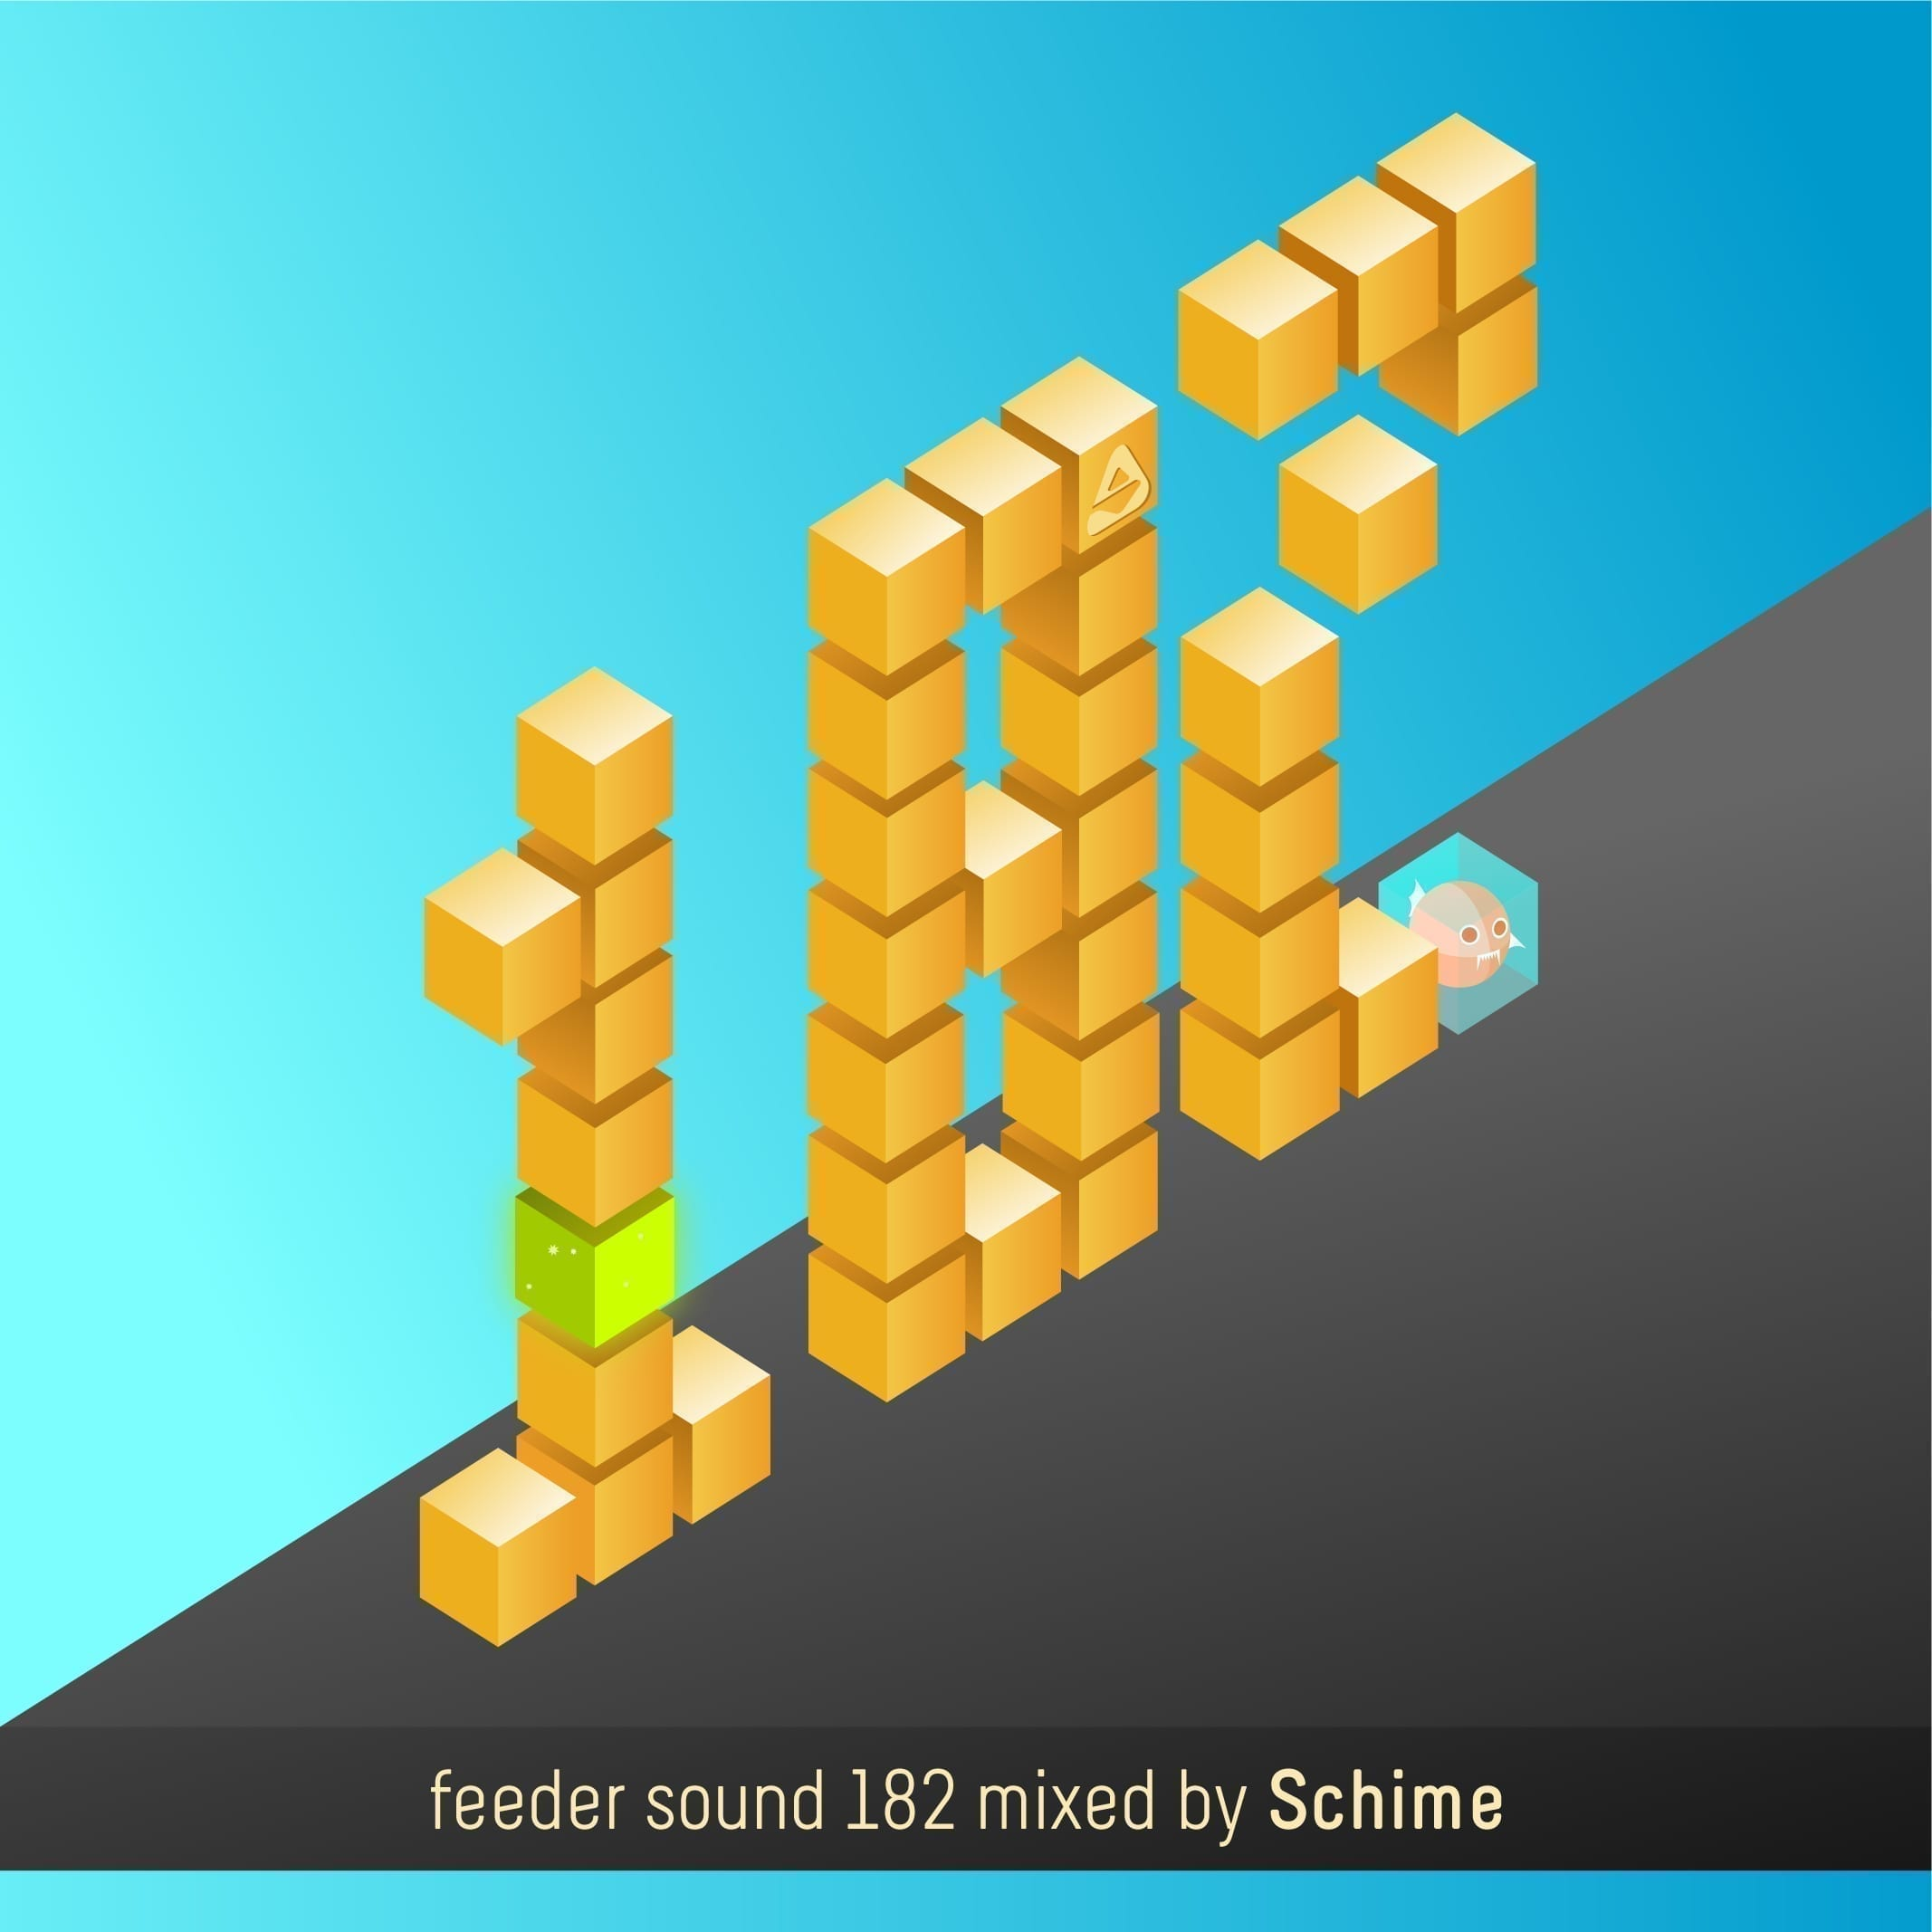 feeder sound 182 mixed by Schime